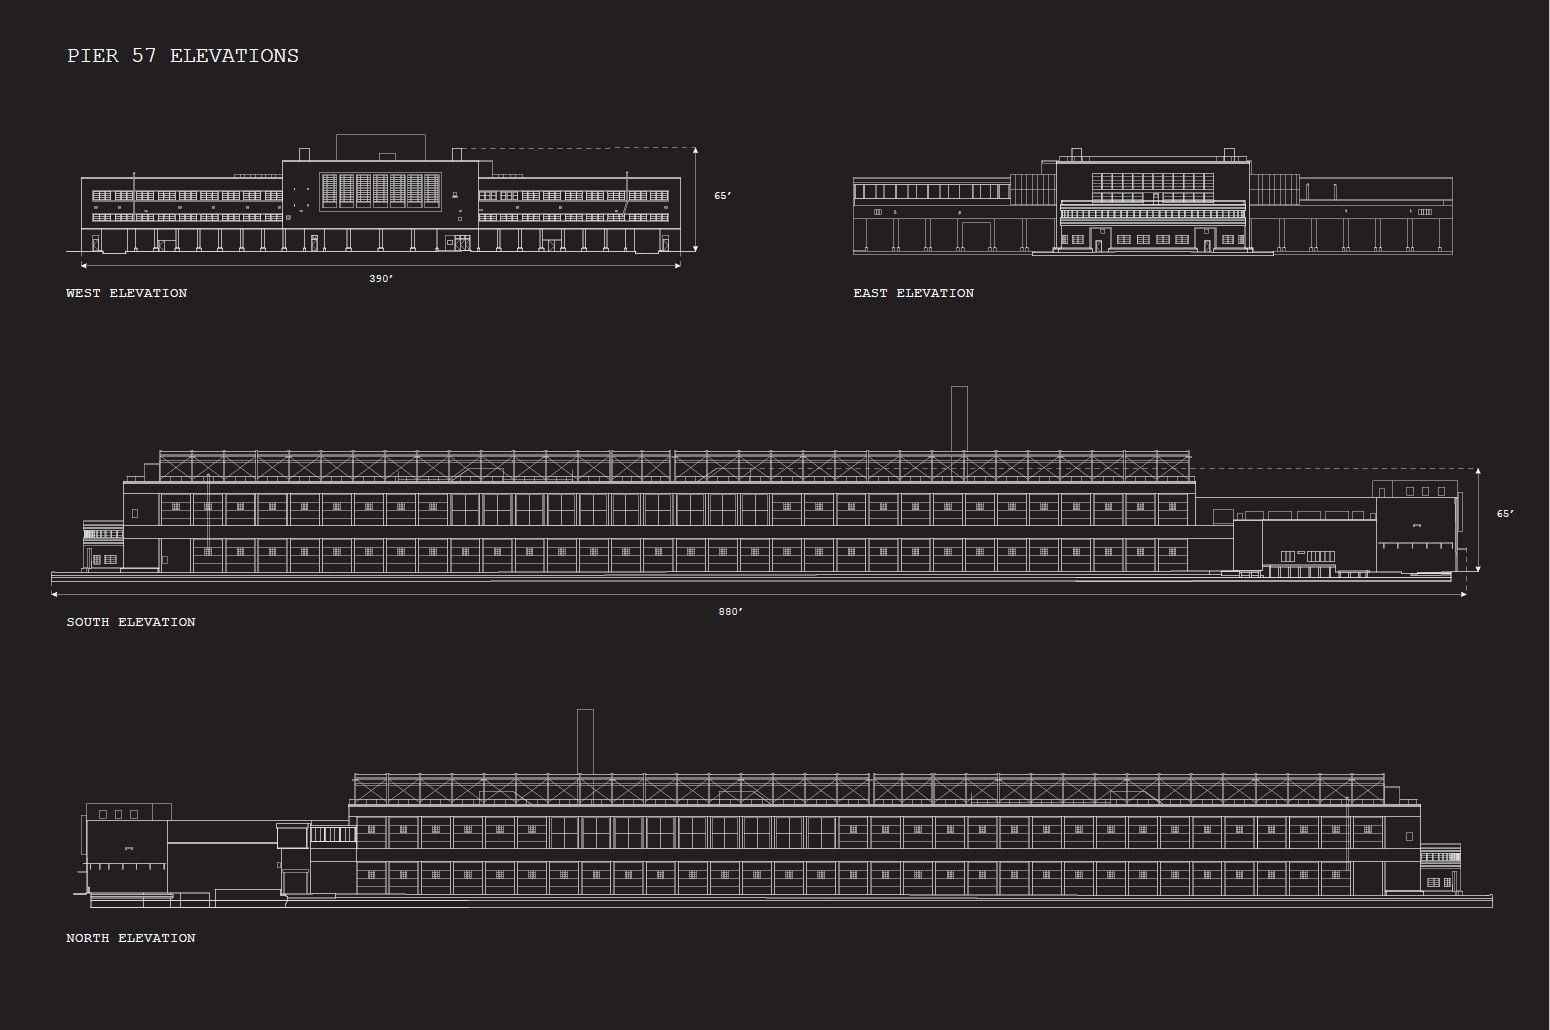 Pier 57 Existing Elevations